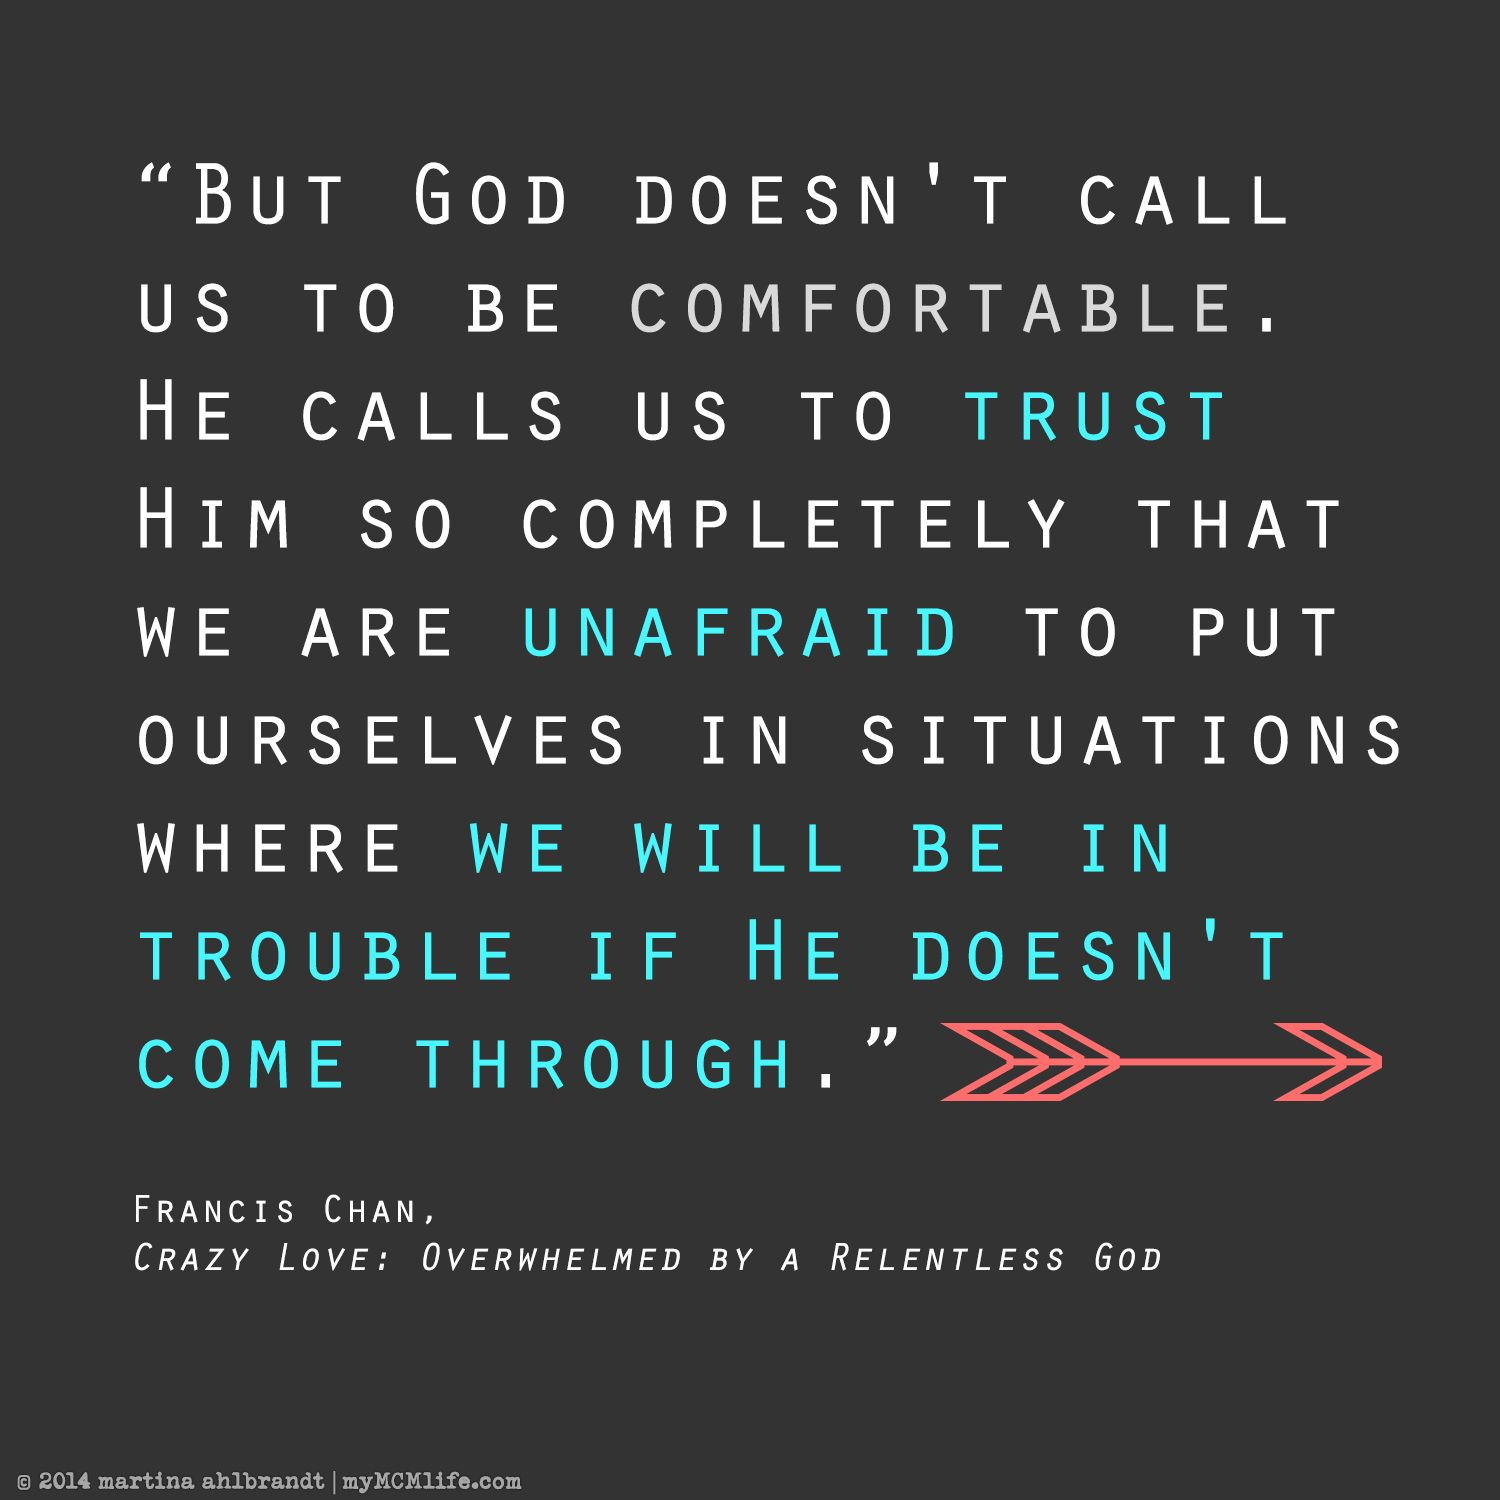 Christian Quotes About Love Francis Chan  Self Lovestrength  Pinterest  Francis Chan